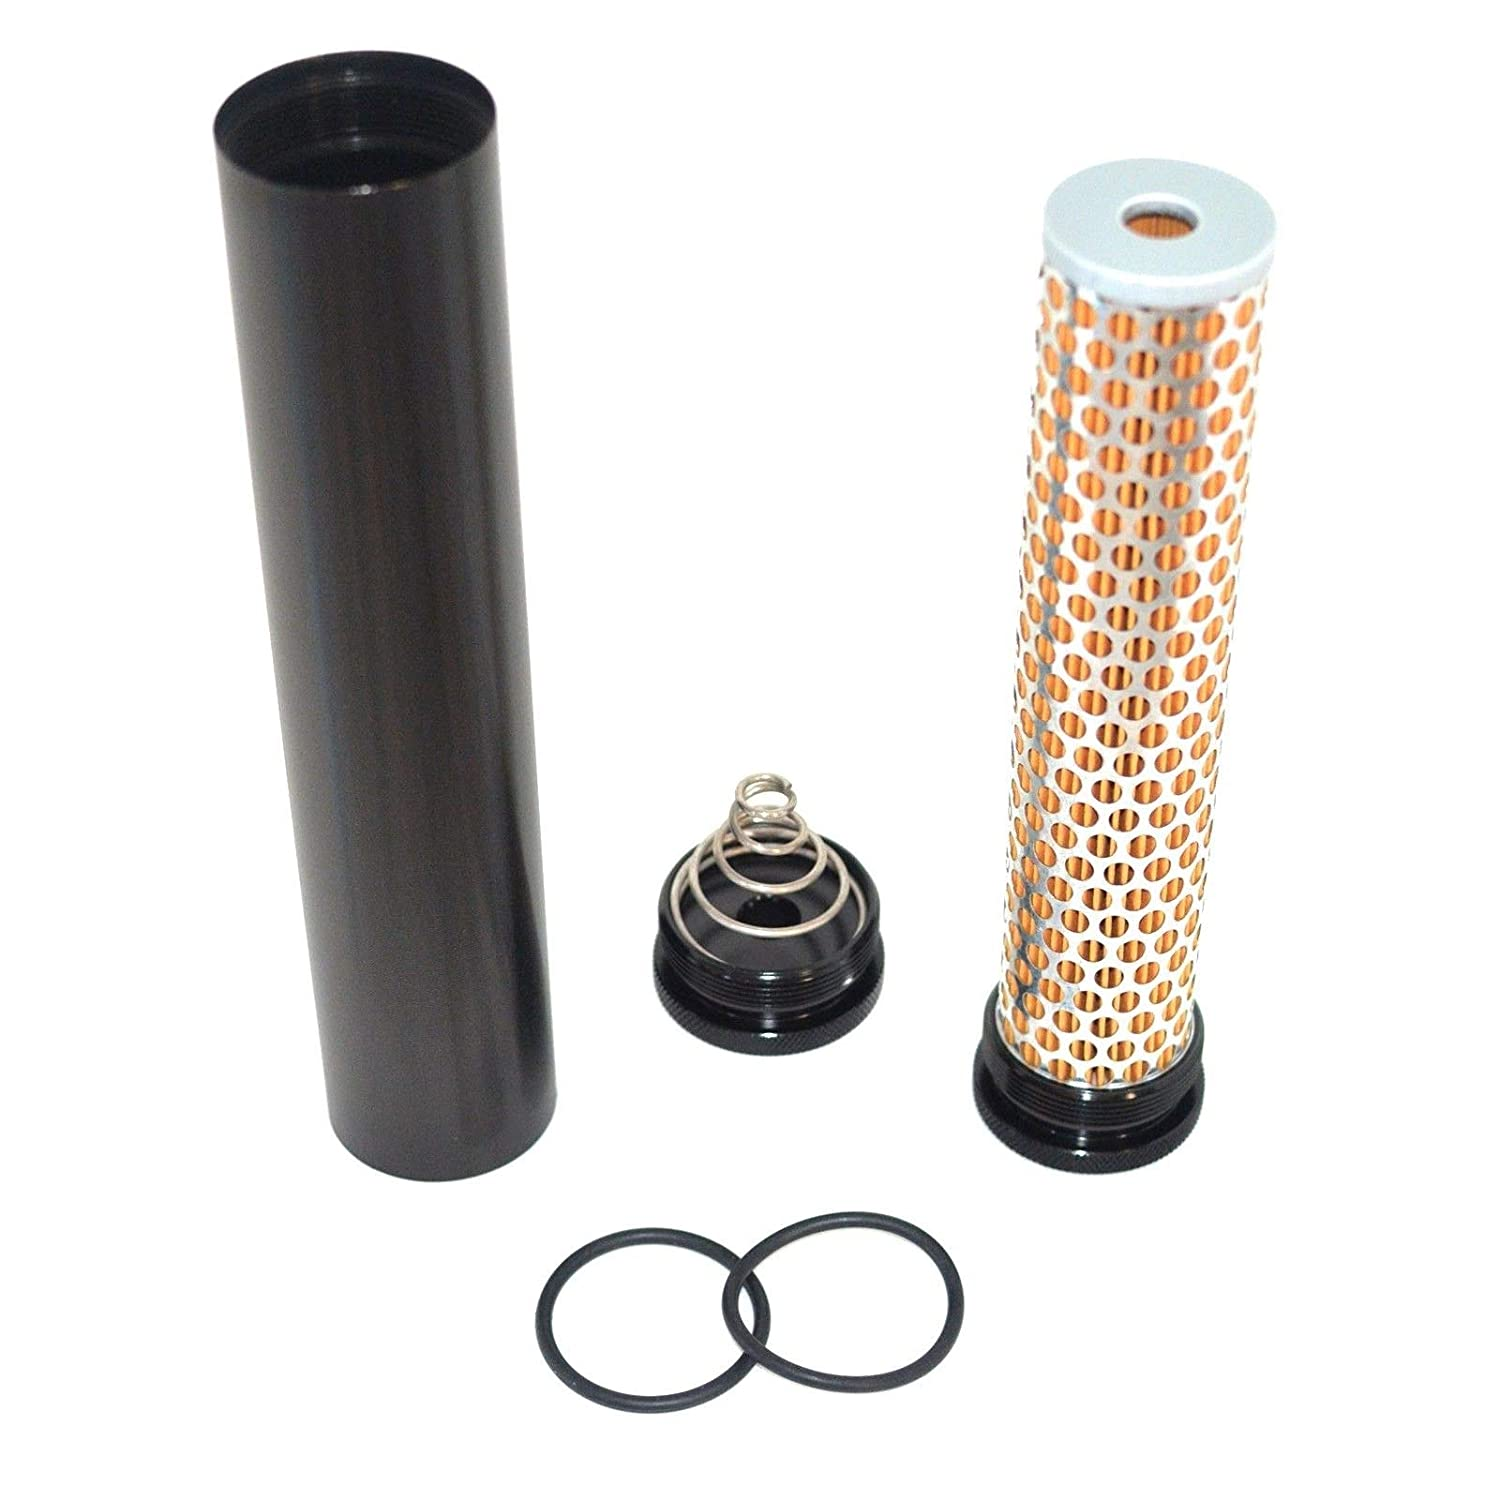 Aluminum Fuel Filter Low Profile 5/8'- 24 1/2'Bore 4003/24003 Heavy Duty Durable Construction New Designed To Trap Your Solvents & Oils While Cleaning - Skroutz Deals